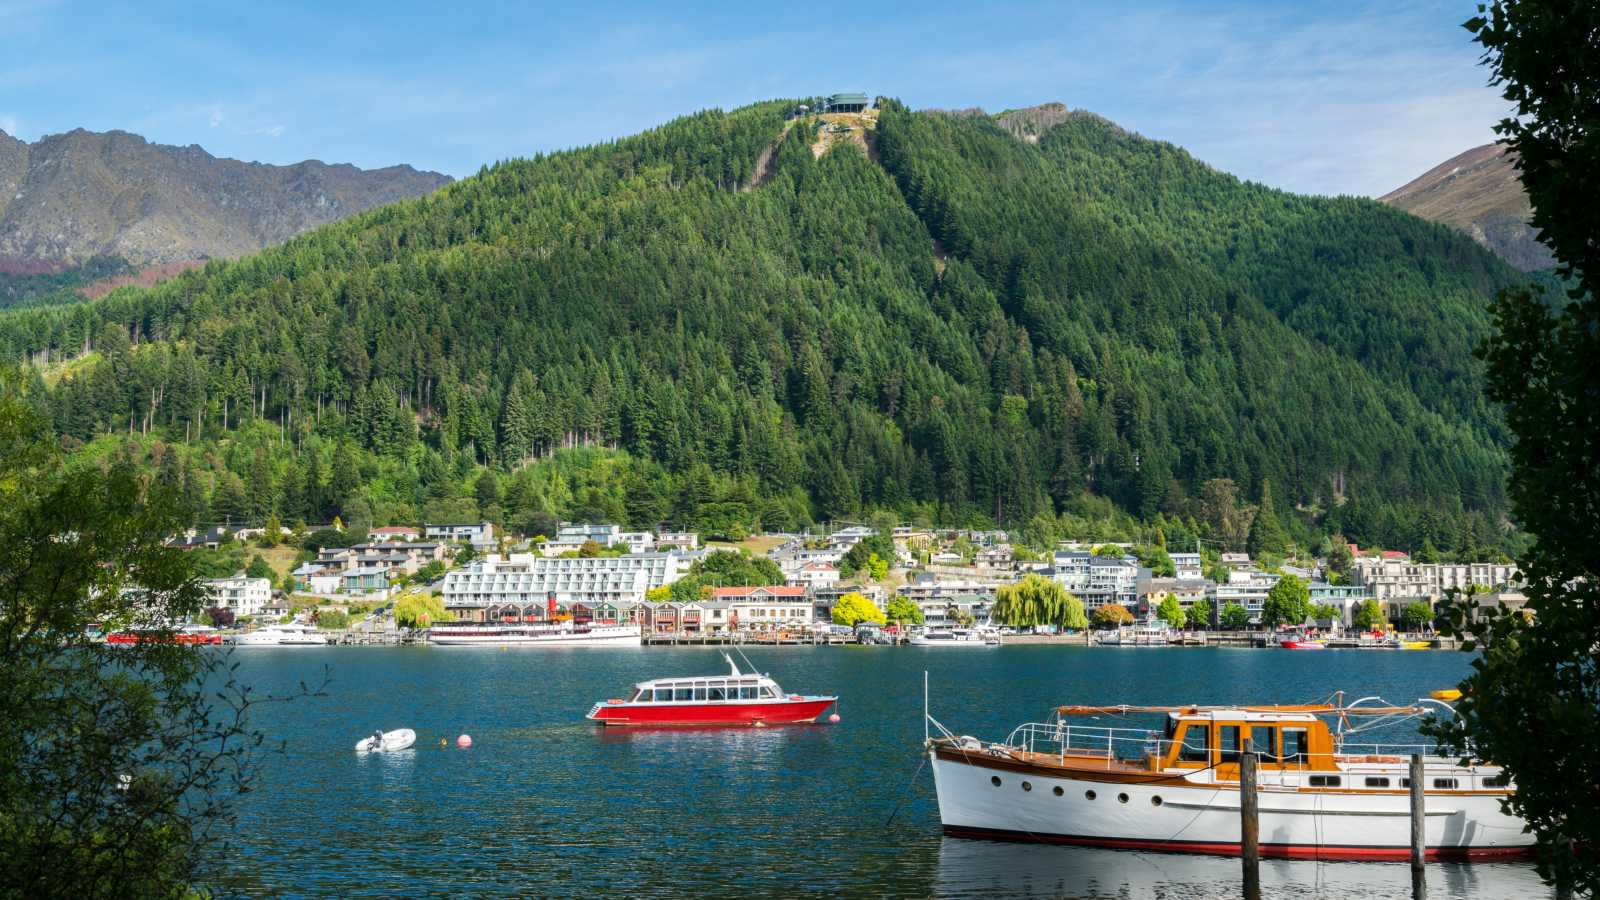 Oceania, New Zealand, view of Queenstown harbor with a green forested hill in the background.